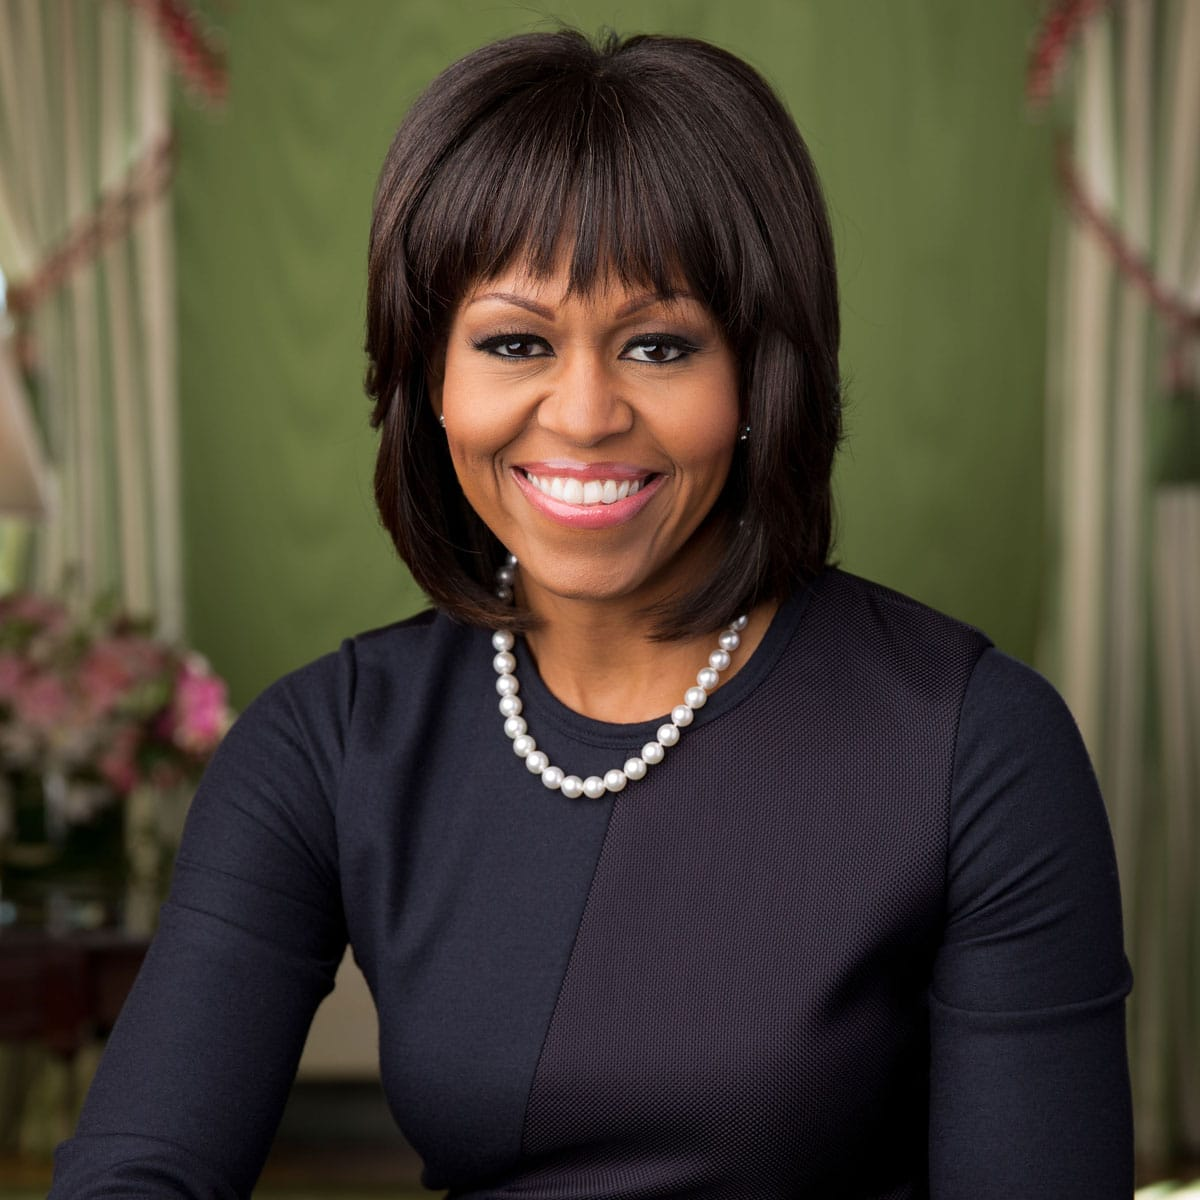 Michelle Obama S Birthday January 17 2020 National Today,Barefoot Contessa Pioneer Woman Meatloaf Recipe